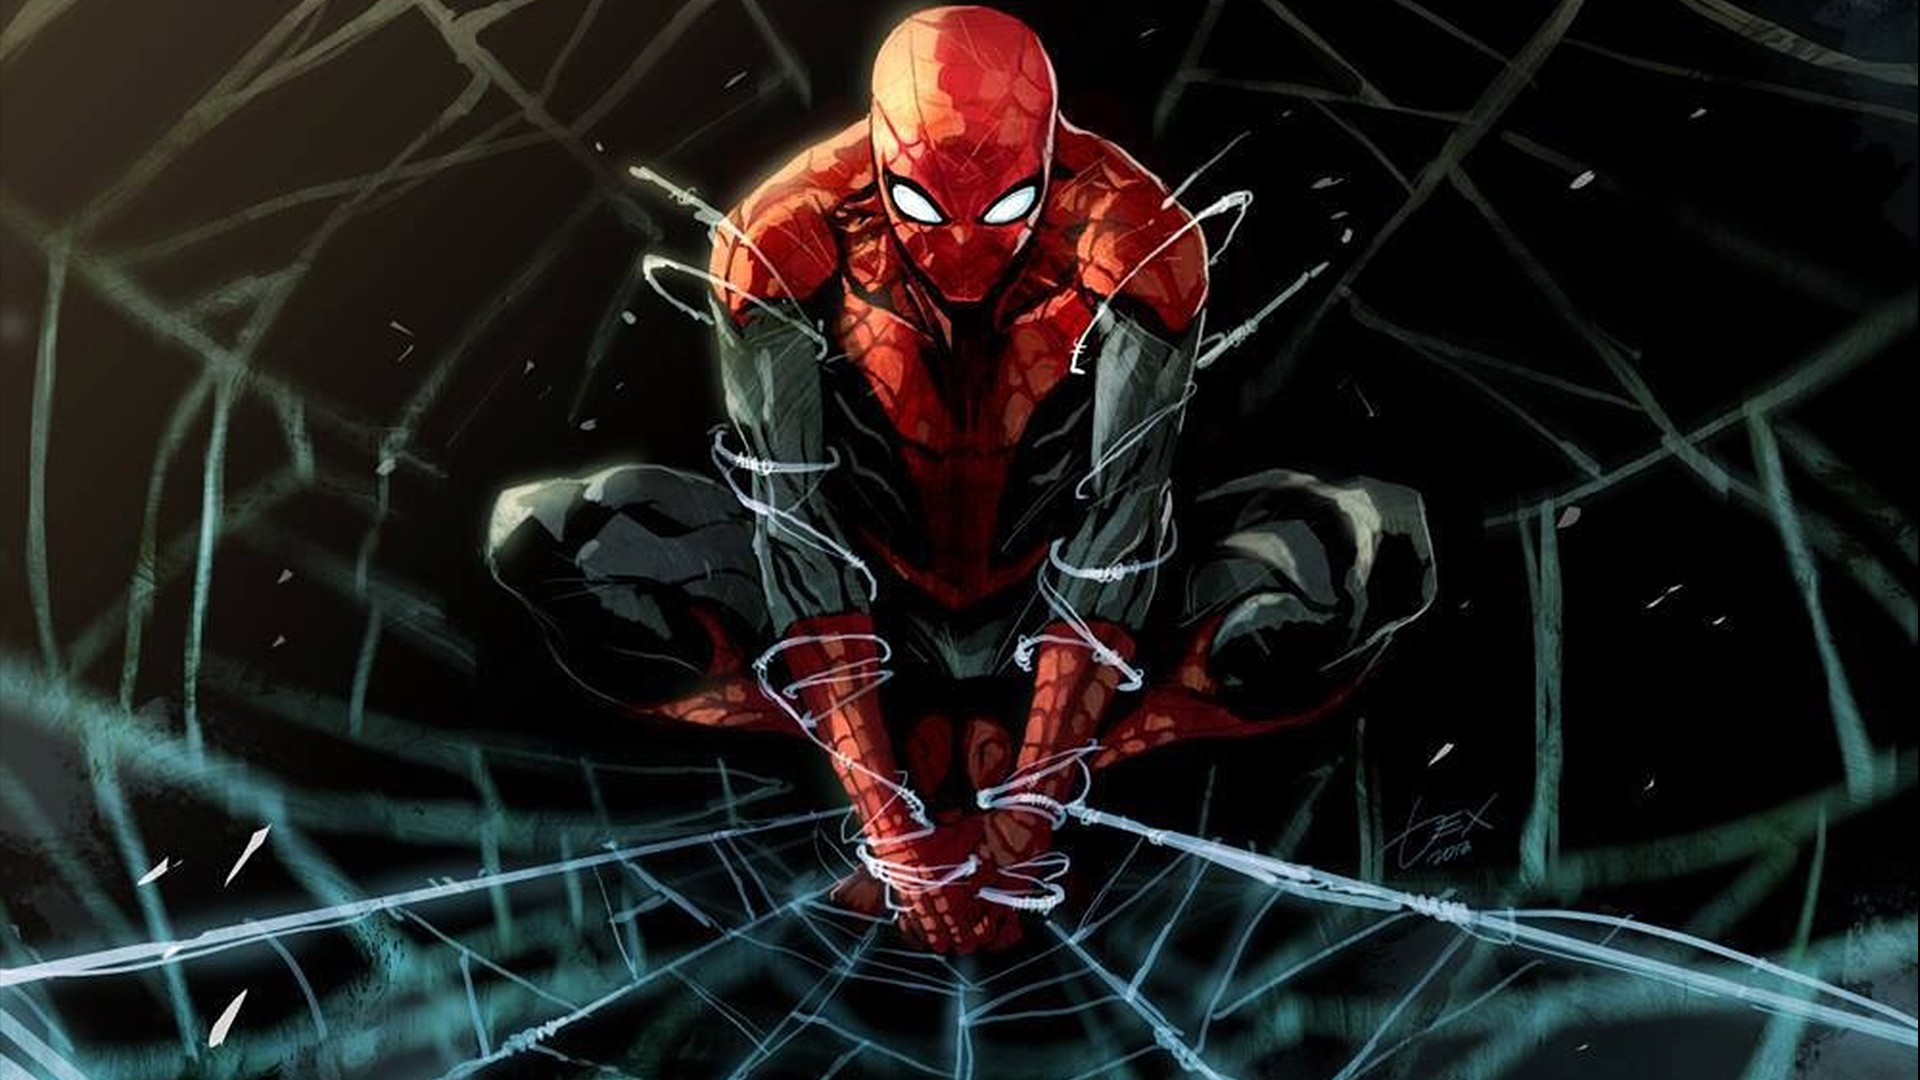 Wallpaper spiderman comic rincon util - Spider hd images download ...